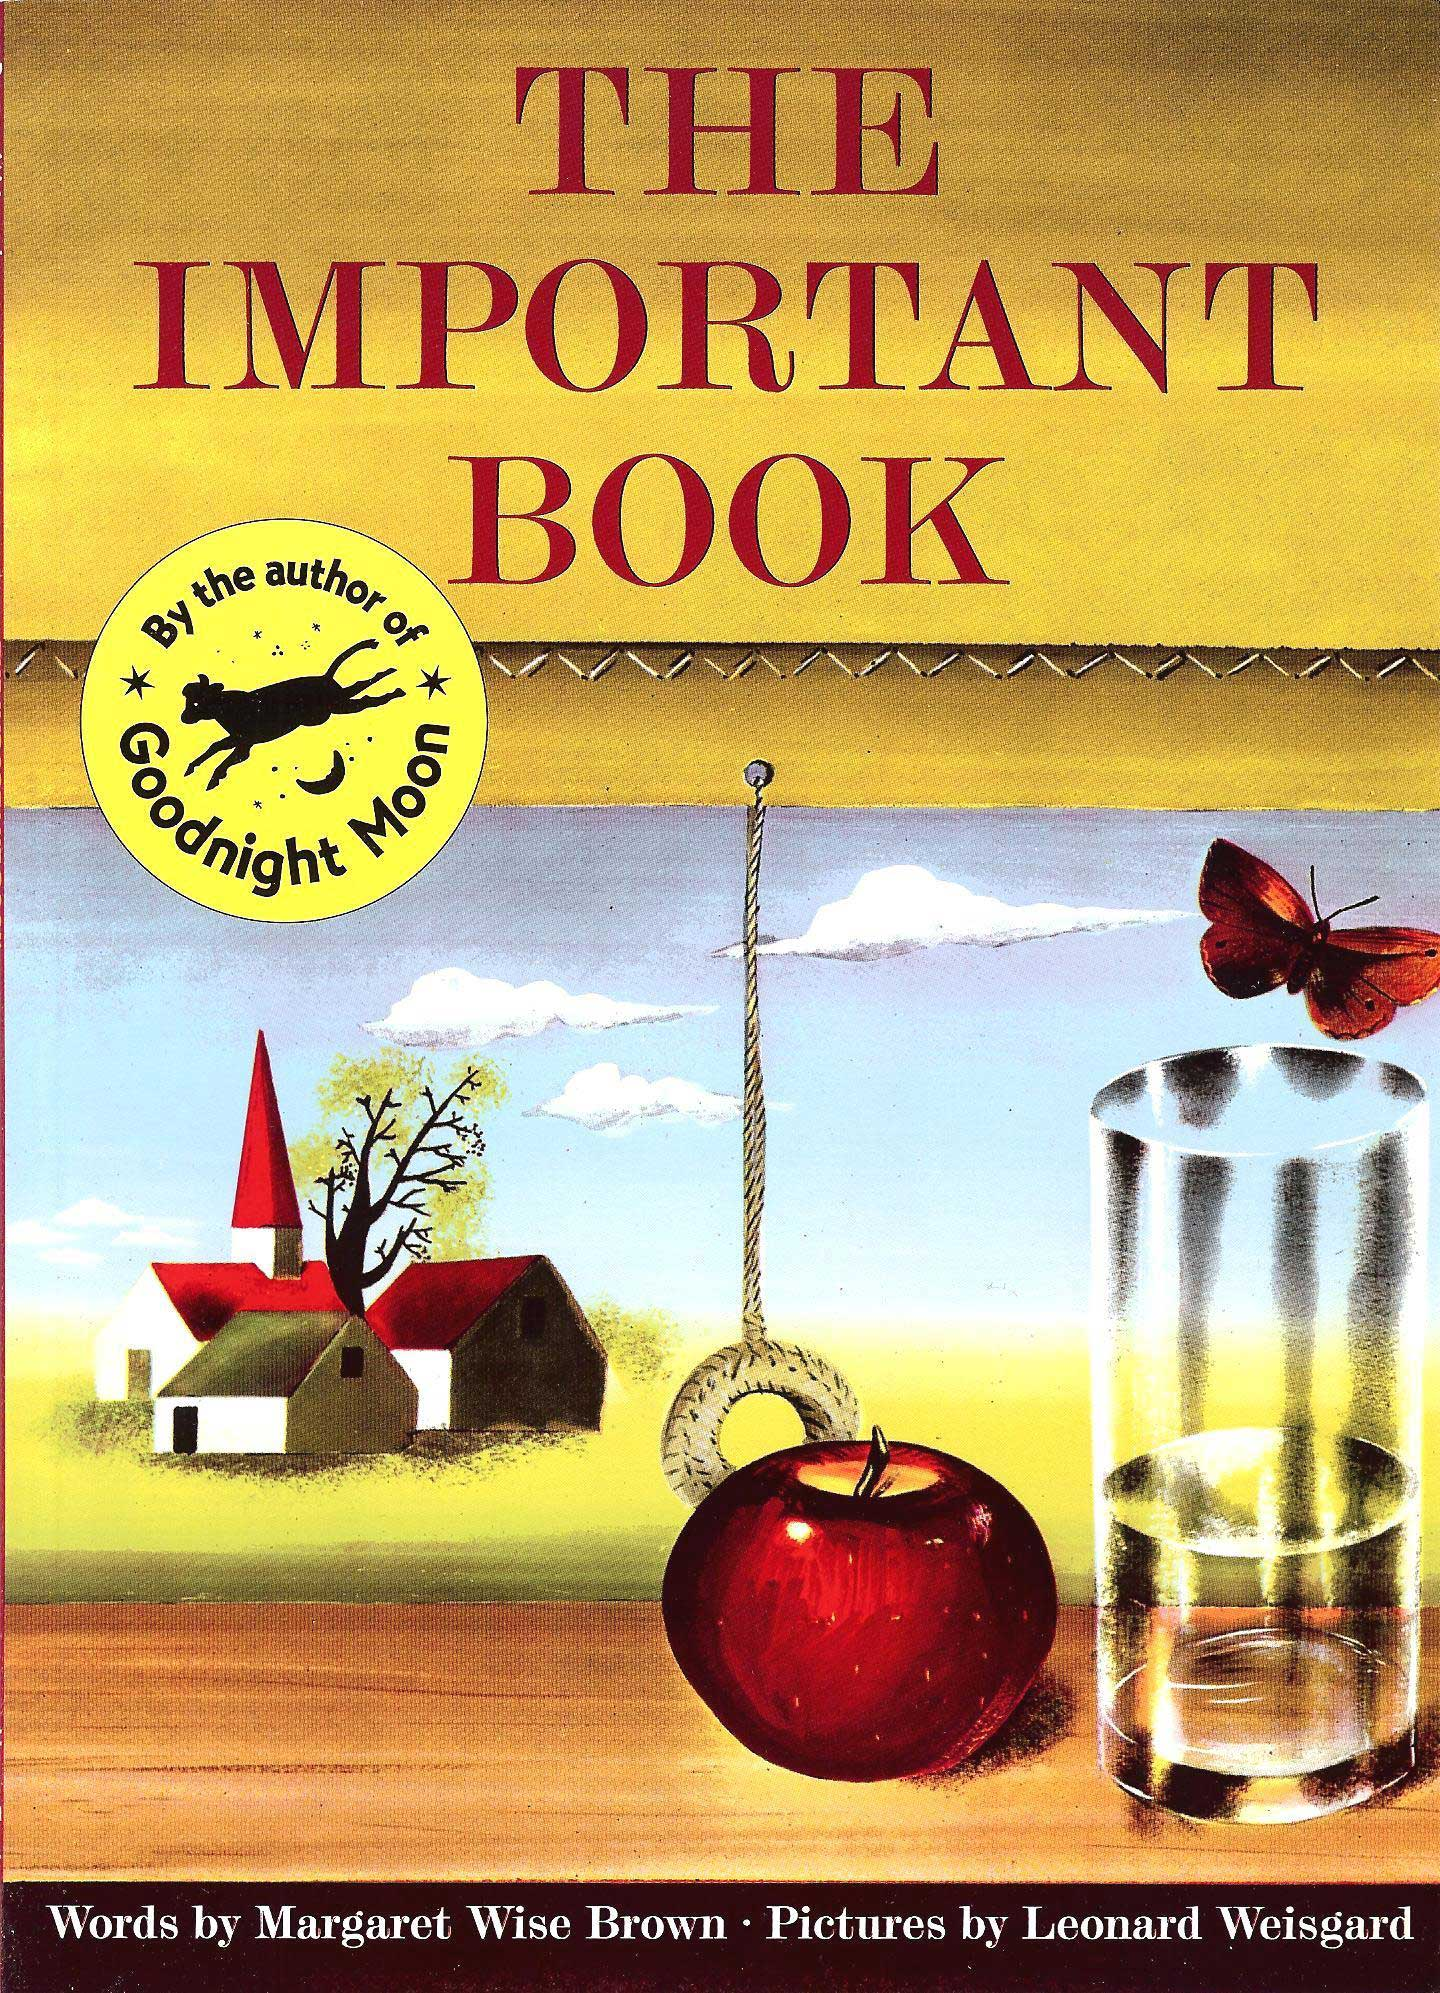 The Important Book, by Margaret Wise Brown, illustrations by Leonard Weisgard.                                                                                                                            A curious game asks children to name the most important quality about the different objects they see.                                                                                                                            Buy now: The Important Book